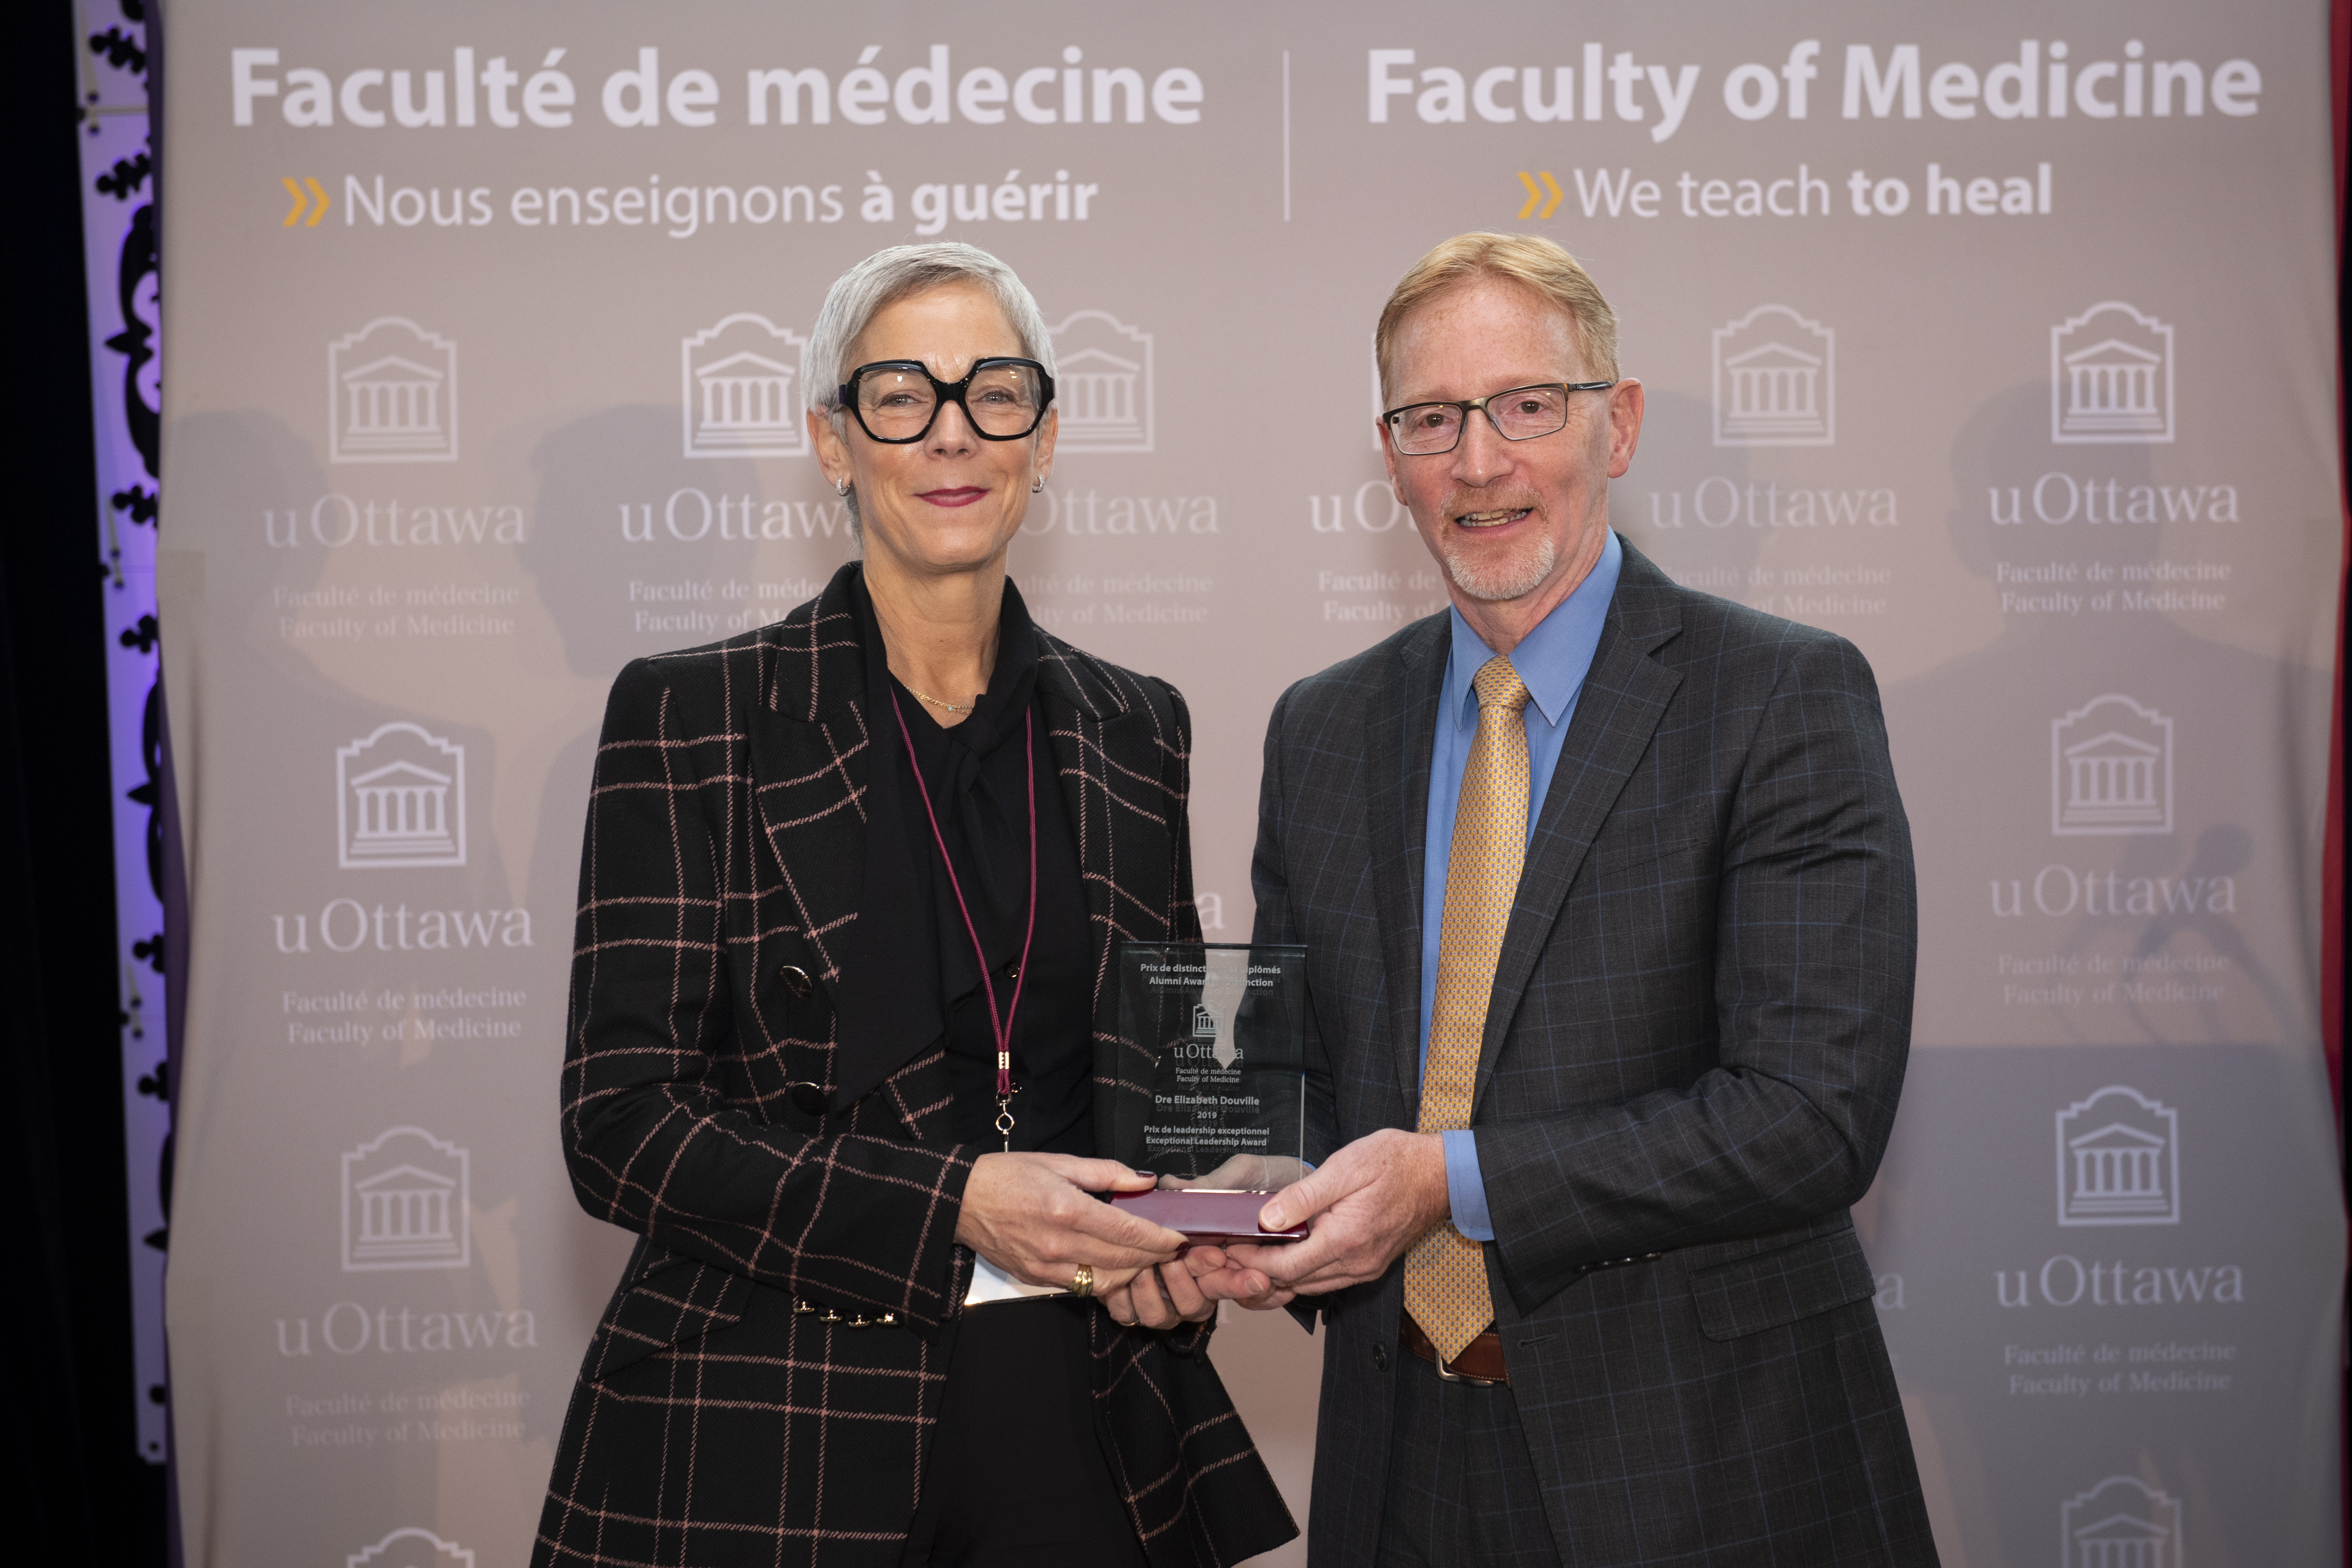 Dr. Douville receives Exceptional Leadership Award 2019